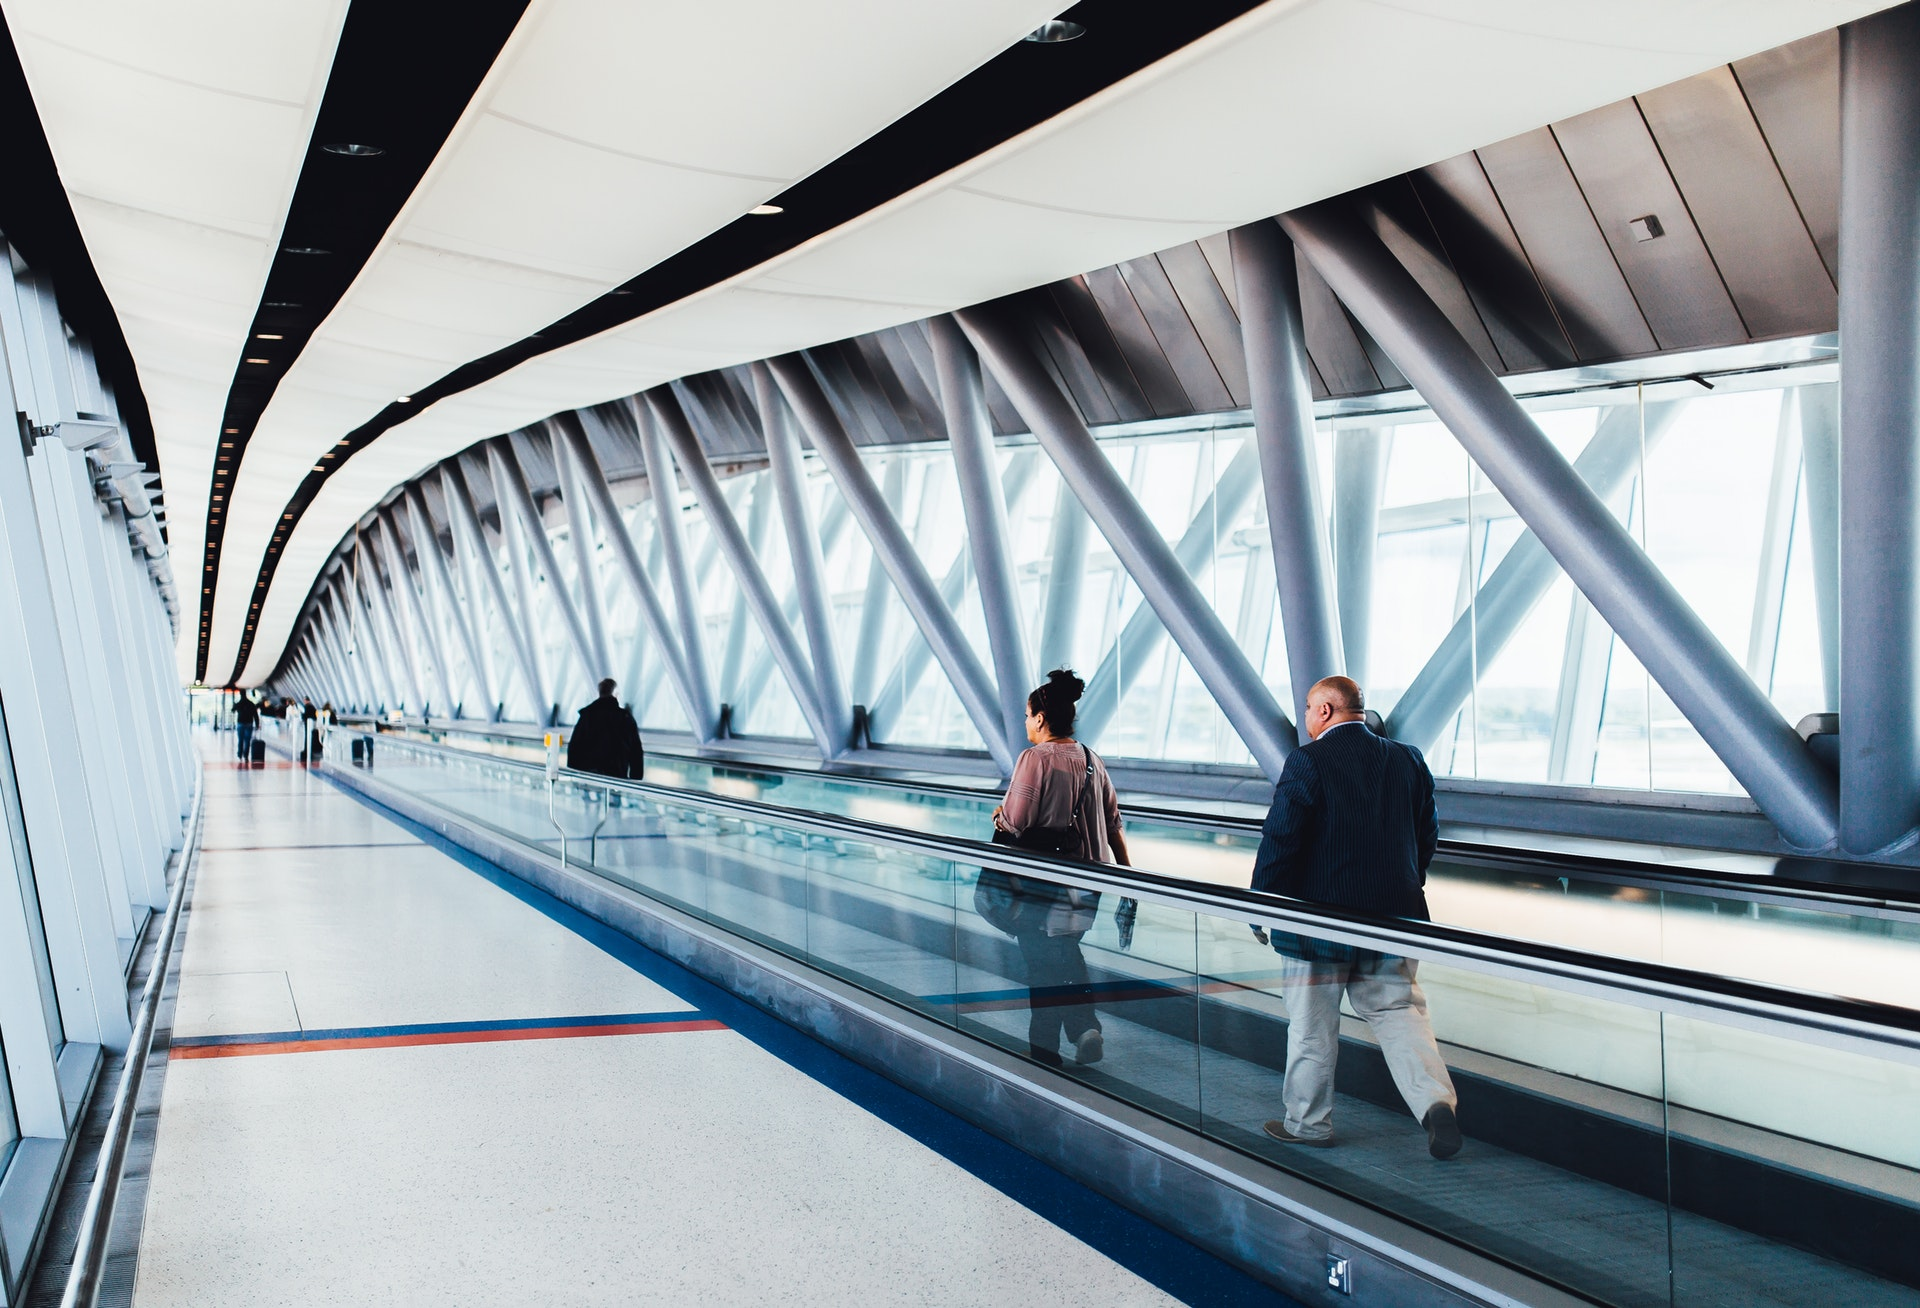 AI, Data, loyalty and Customer Centricity: Digital transformation at the boarding gate